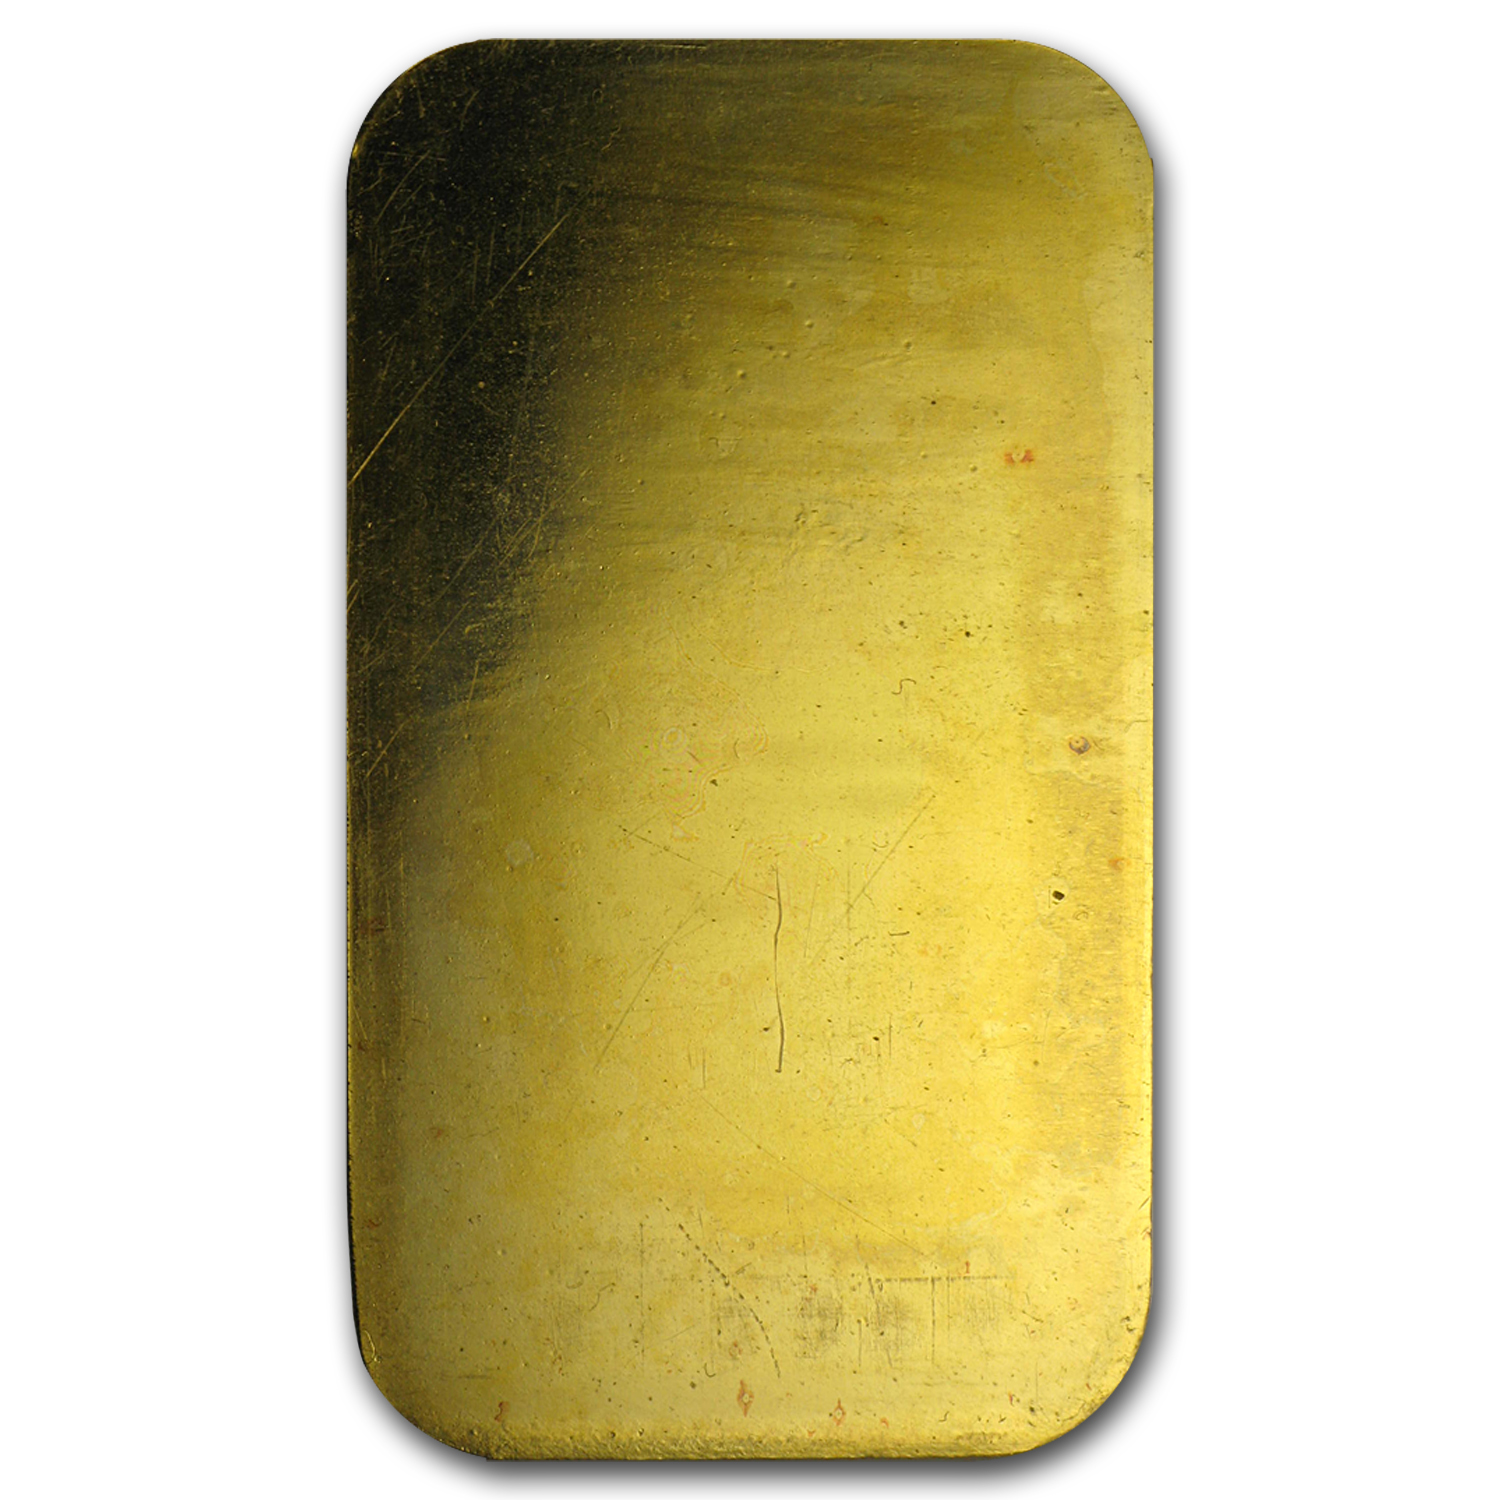 1 oz Gold Bars - Engelhard (Maple Leaf)